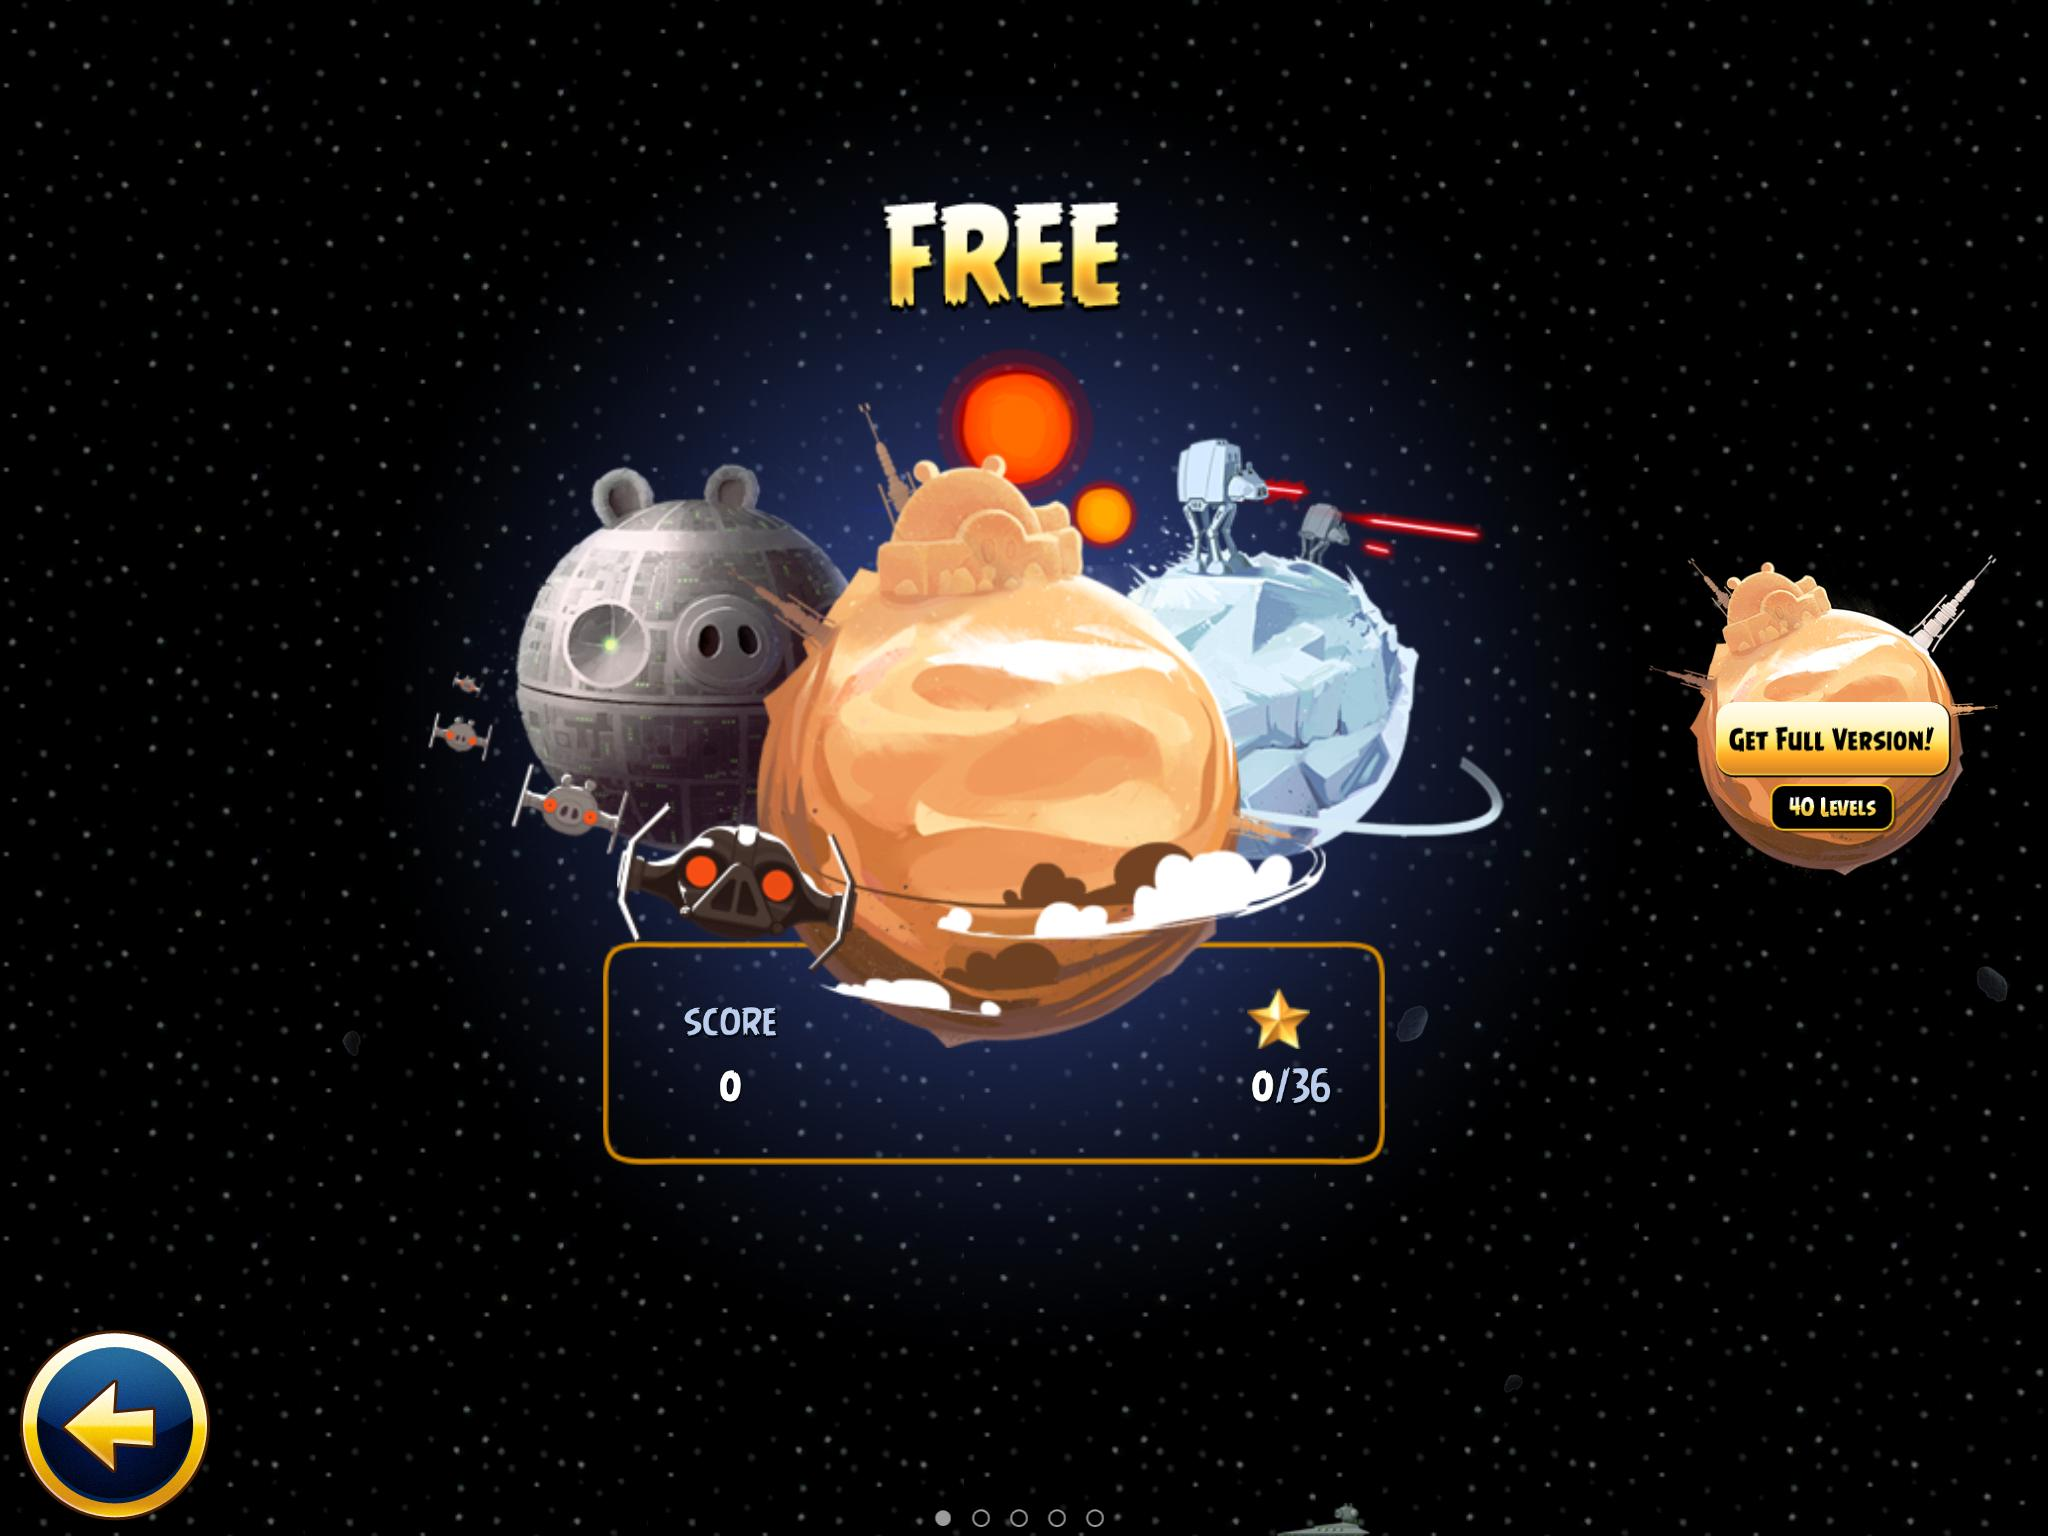 Free (Angry Birds Star Wars)